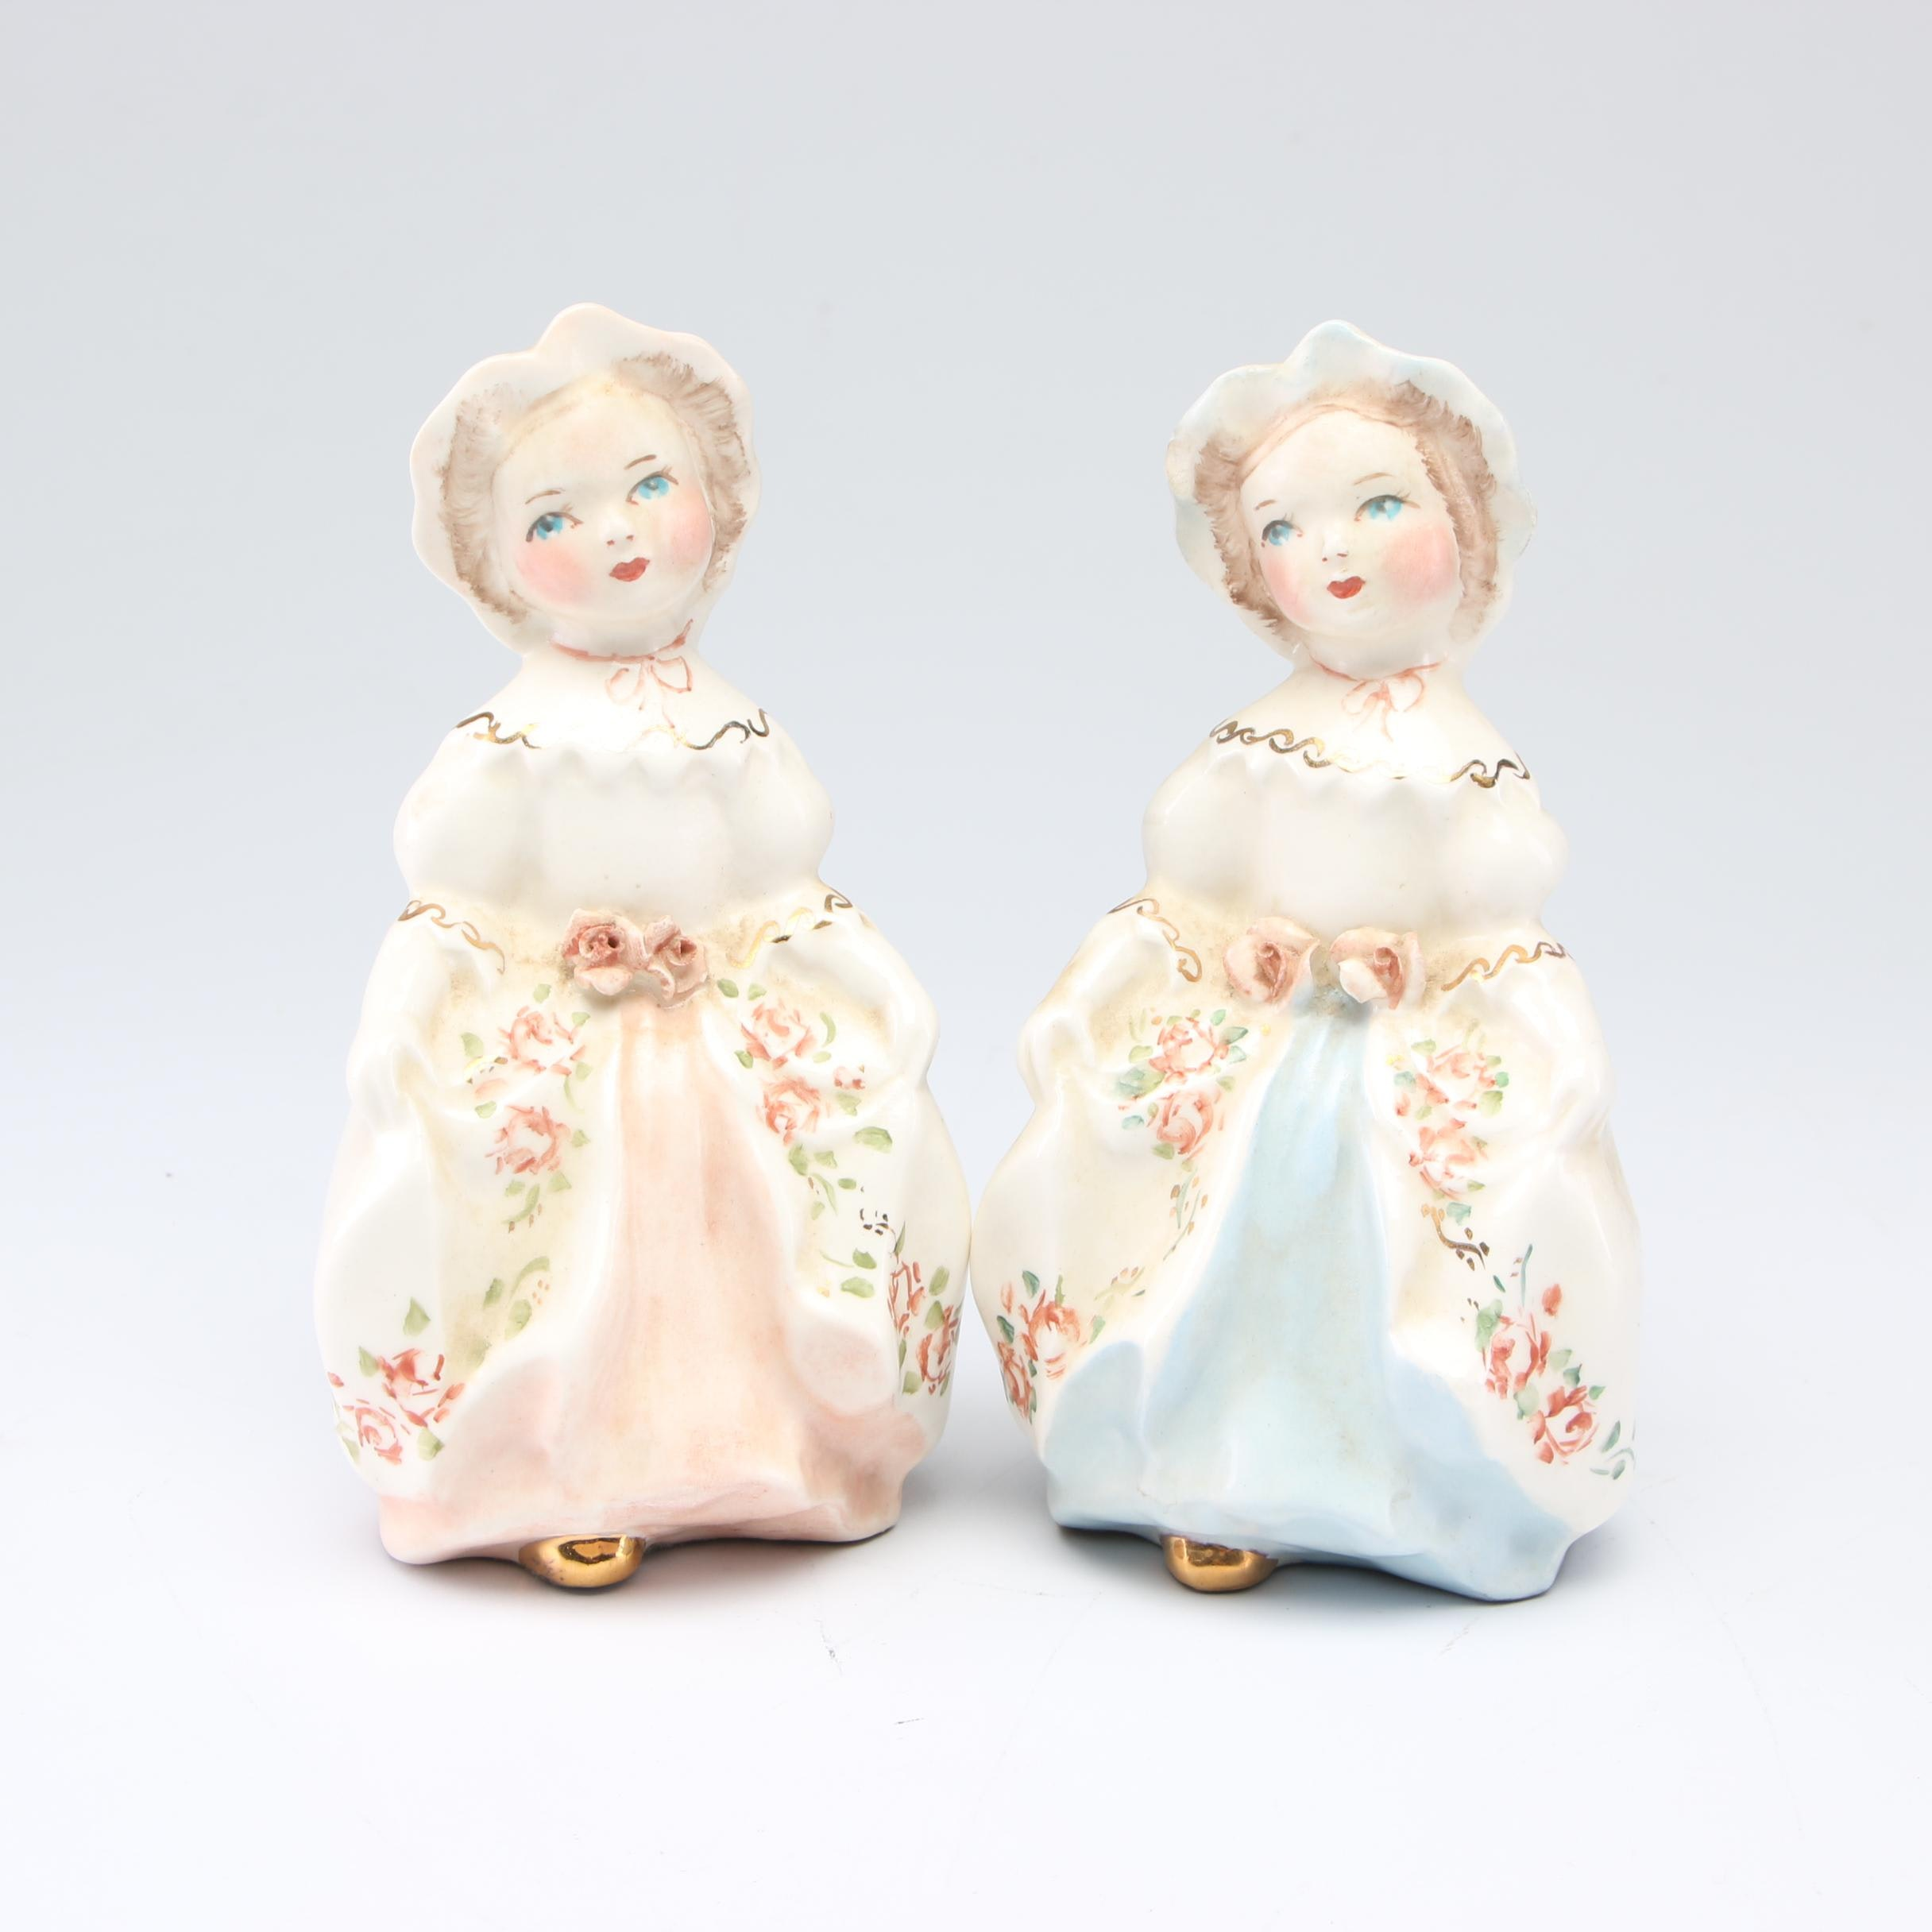 Pair of Hand-Painted Porcelain Figurines, Mid 20th Century